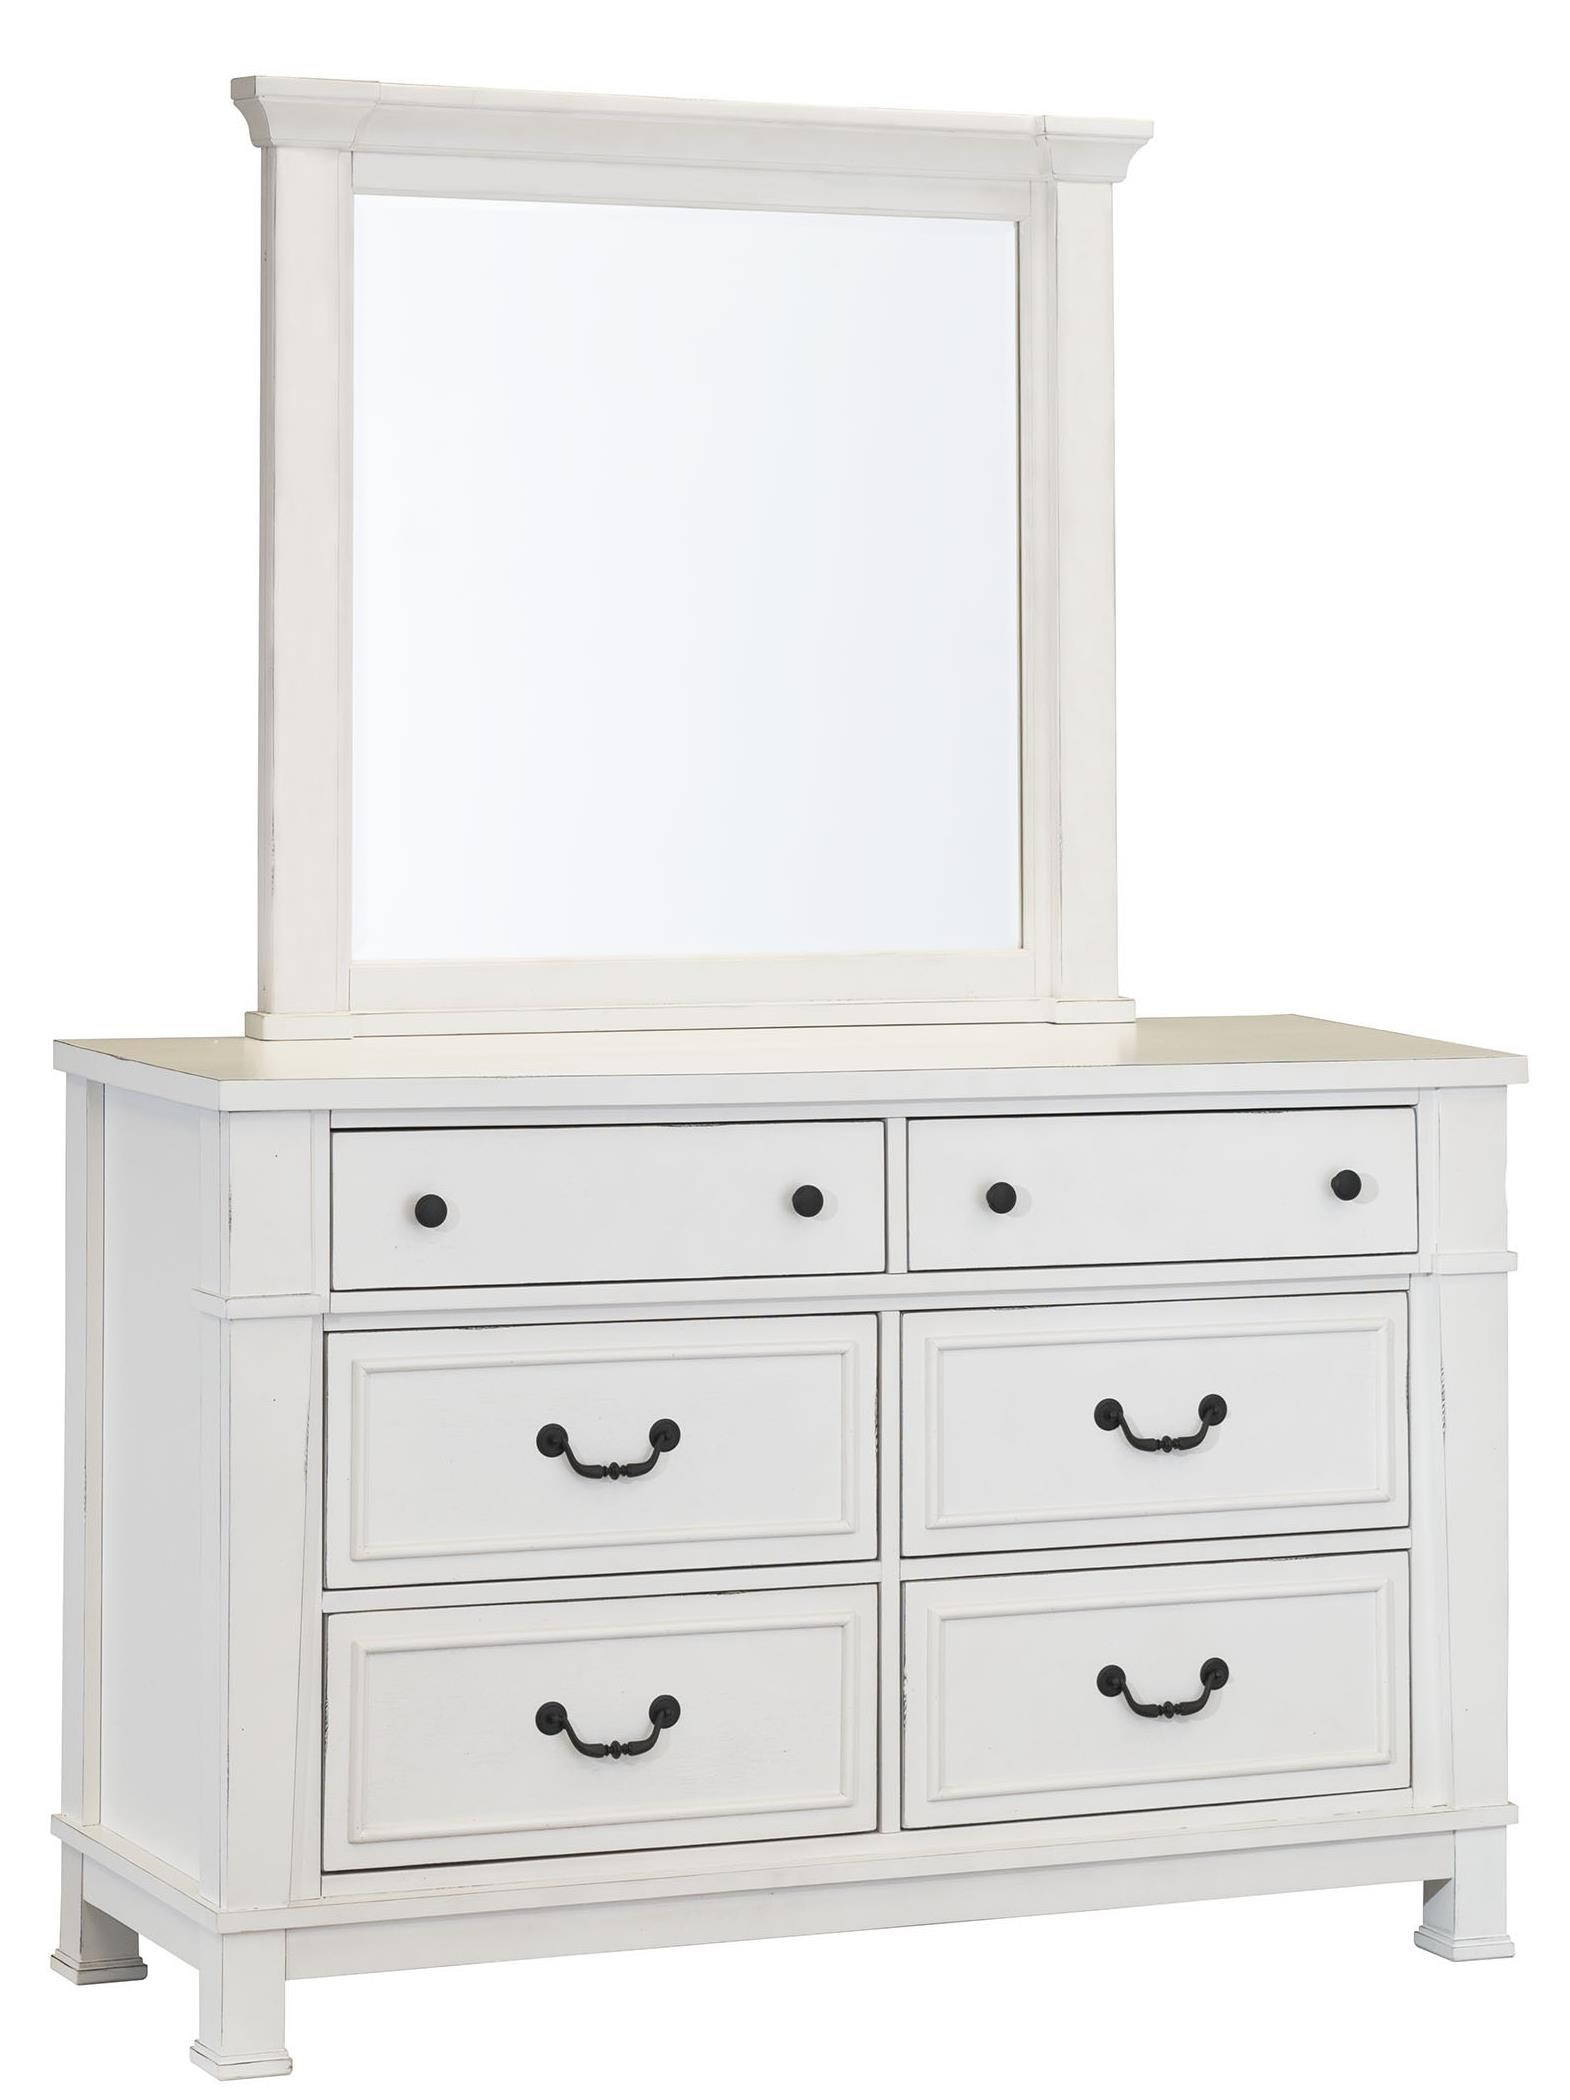 Youth bedroom vintage white dresser and mirror set by standard furniture wolf and gardiner wolf furniture